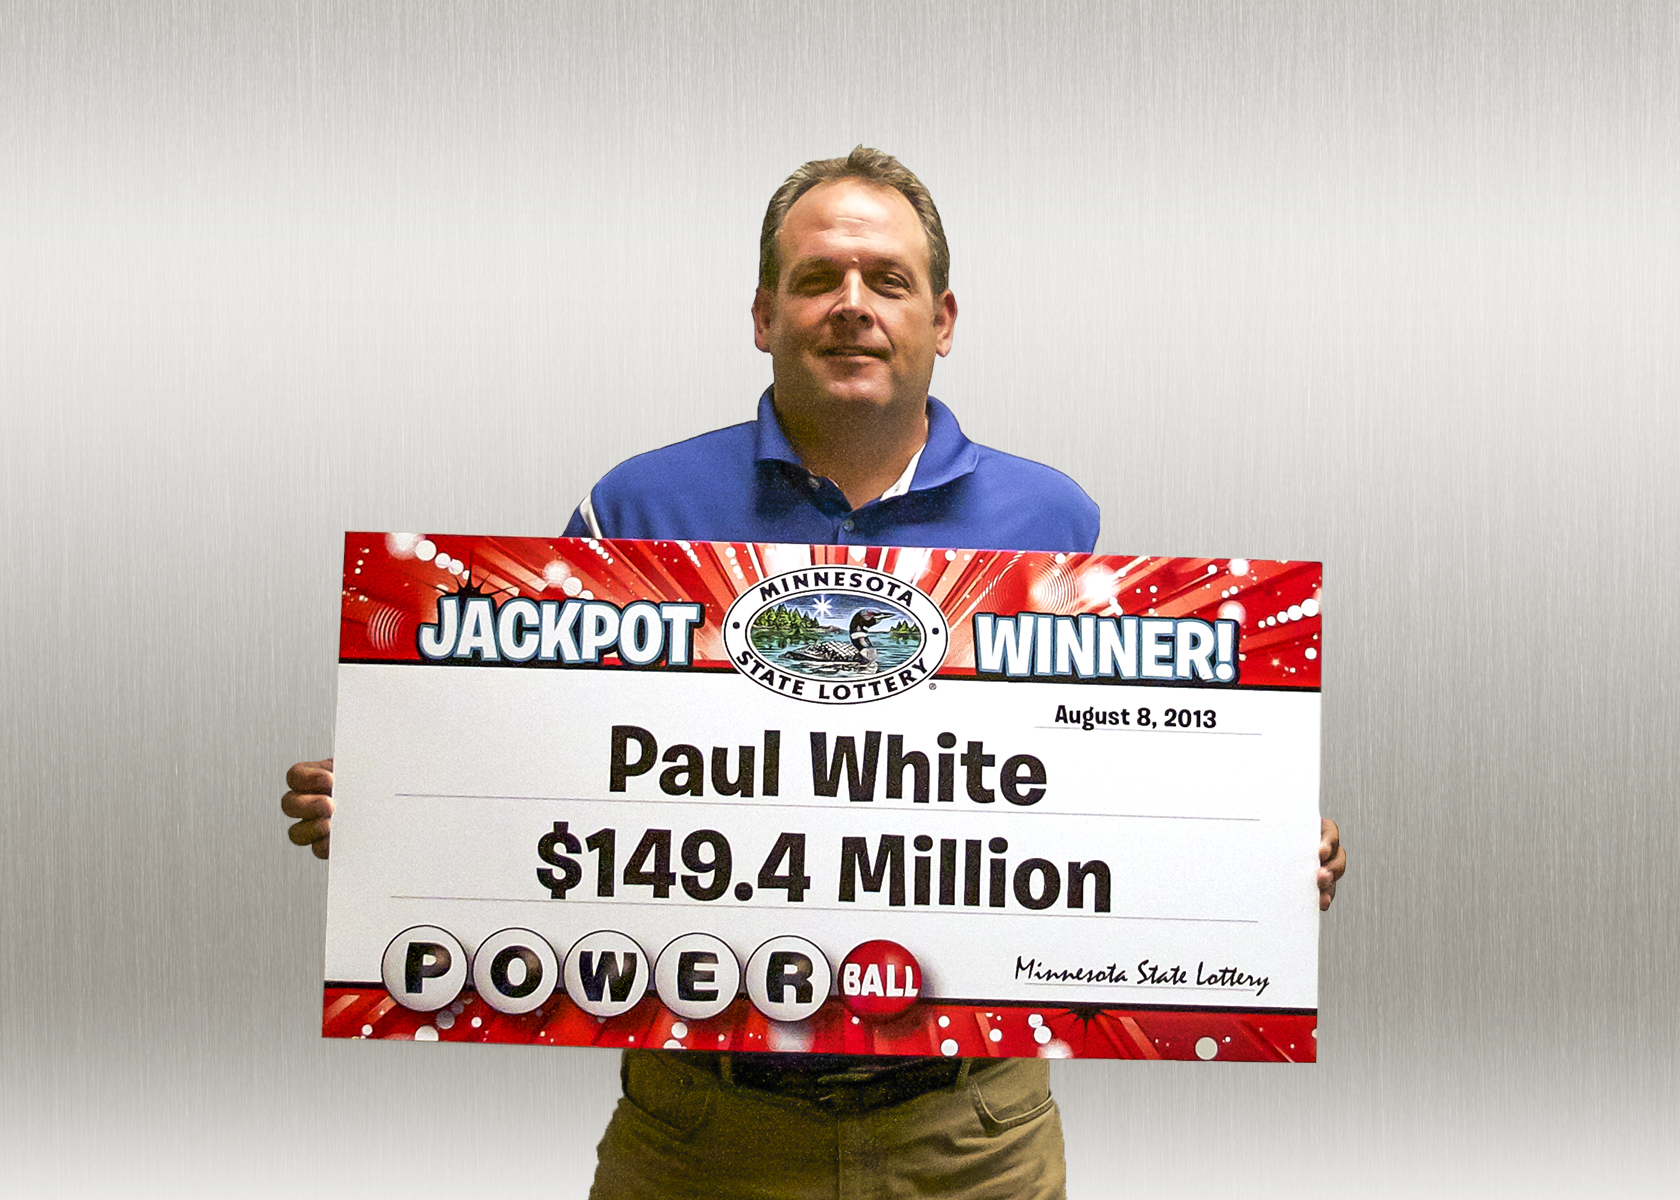 www mnlottery com powerball photo - 1